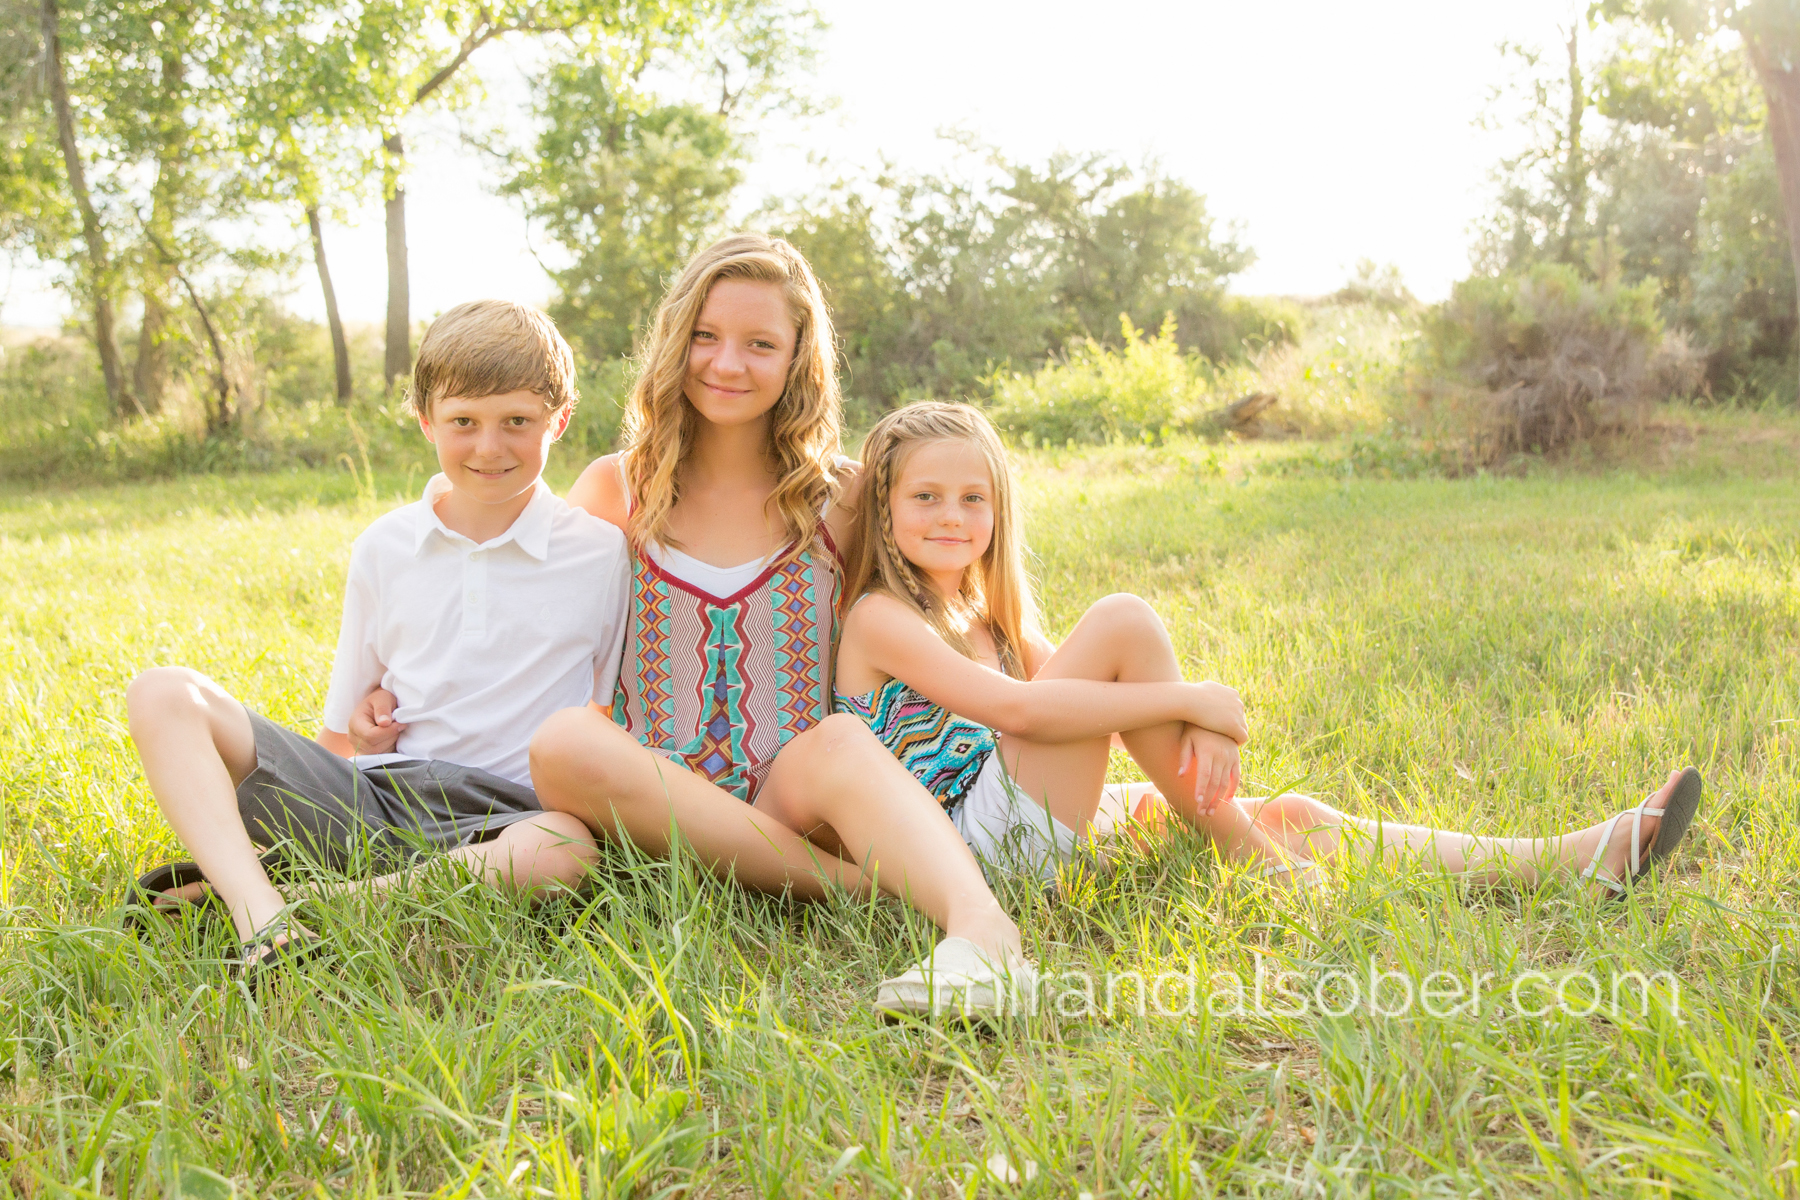 family photography, Miranda L. Sober, Fort Collins photographer